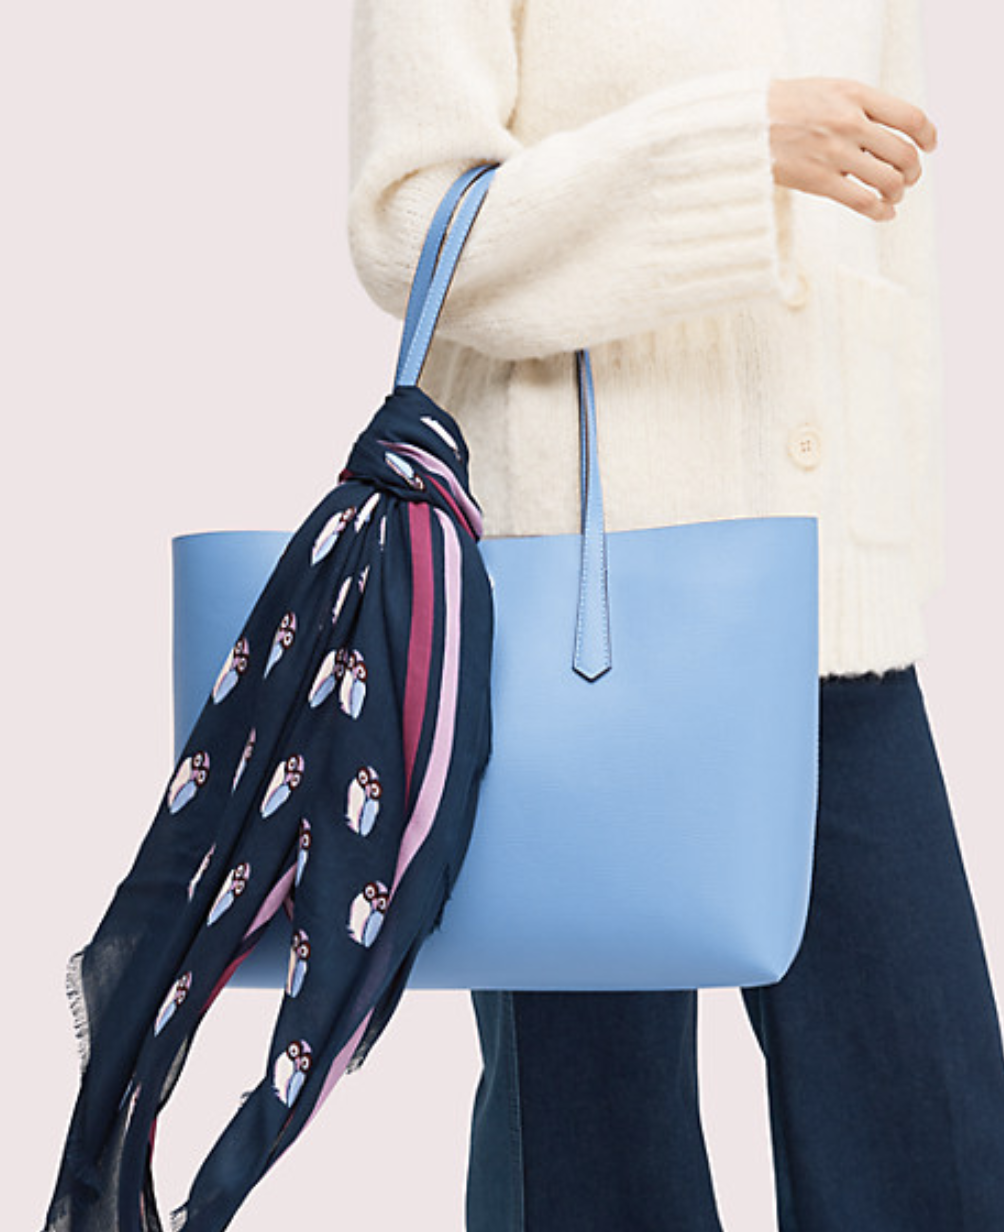 Model holding a handbag with the navy scarf with pink stripes and small blue and pink owl design tied around the handle